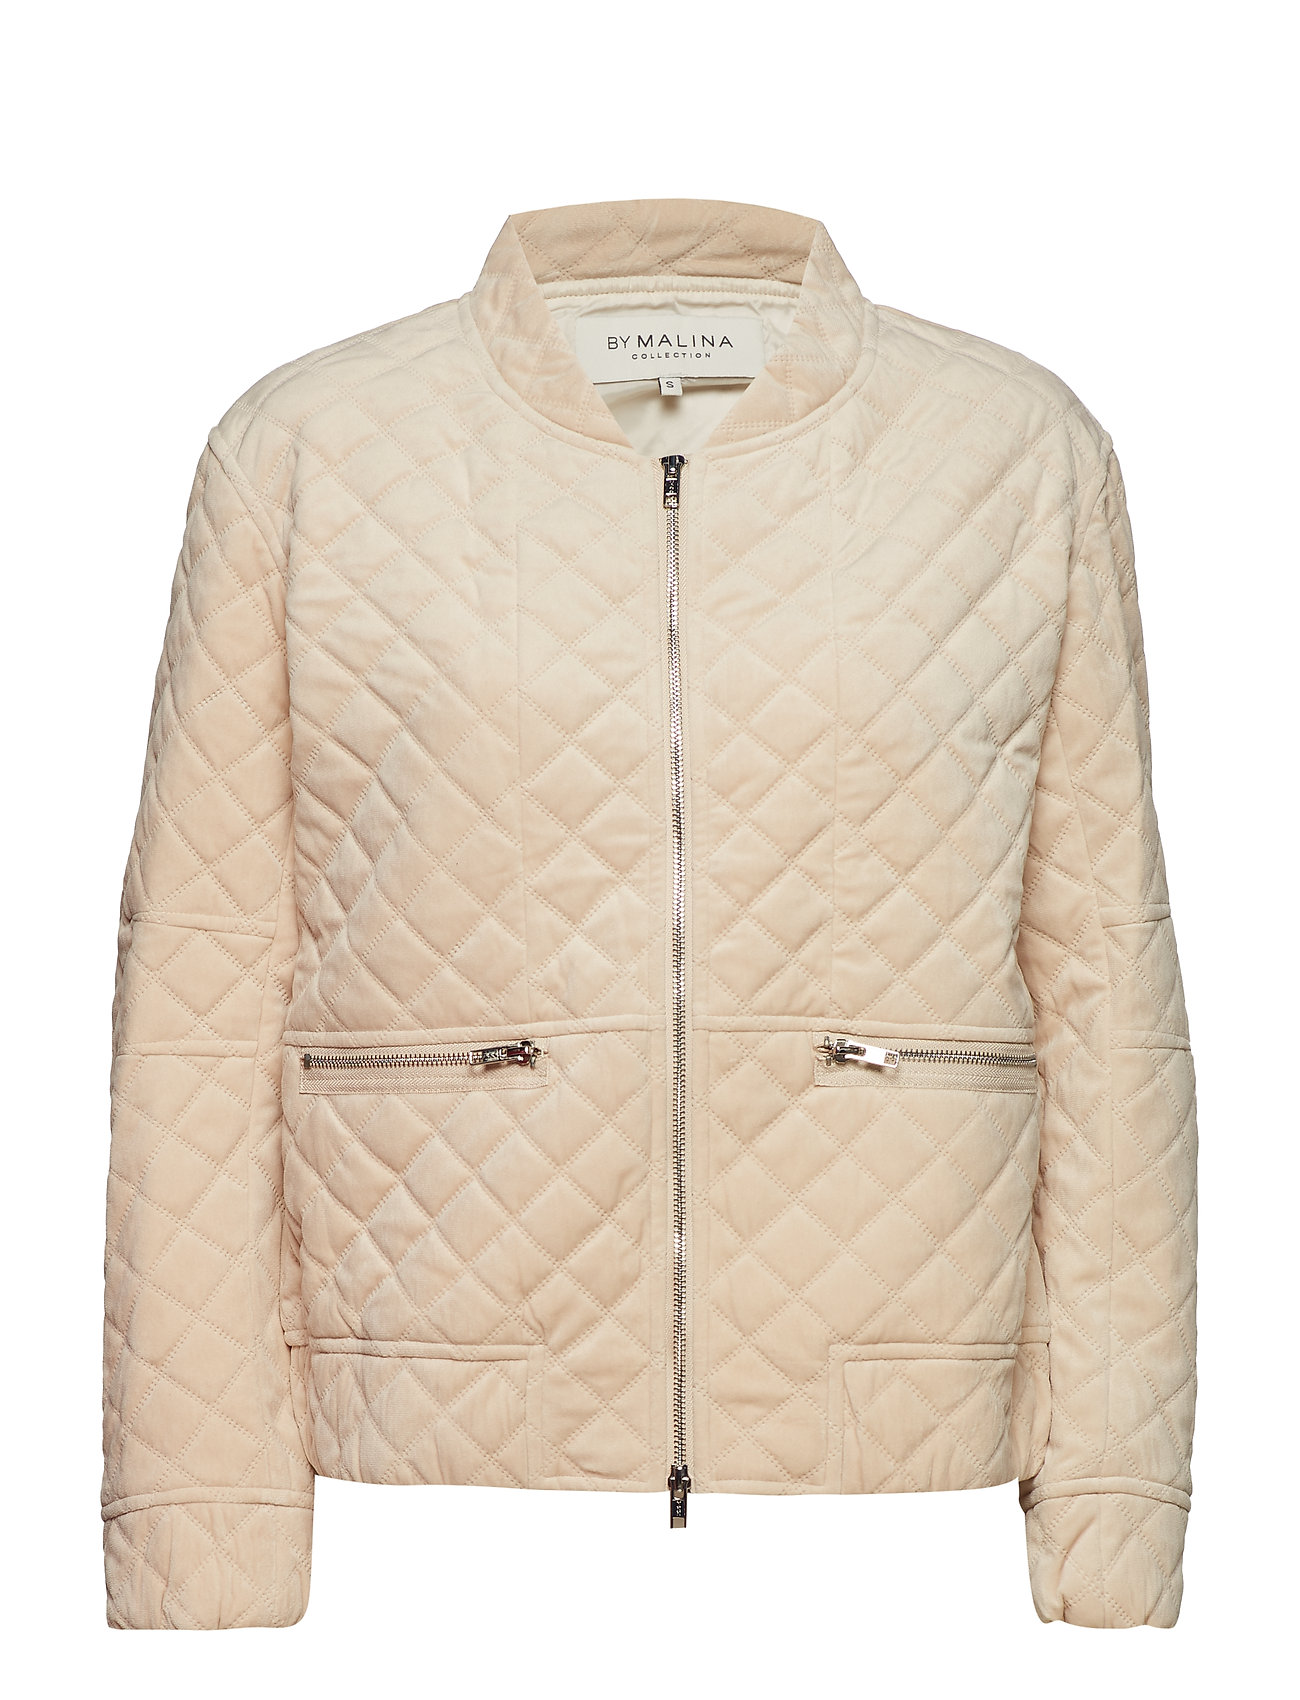 By Malina Callie jacket - CHAMPAGNE